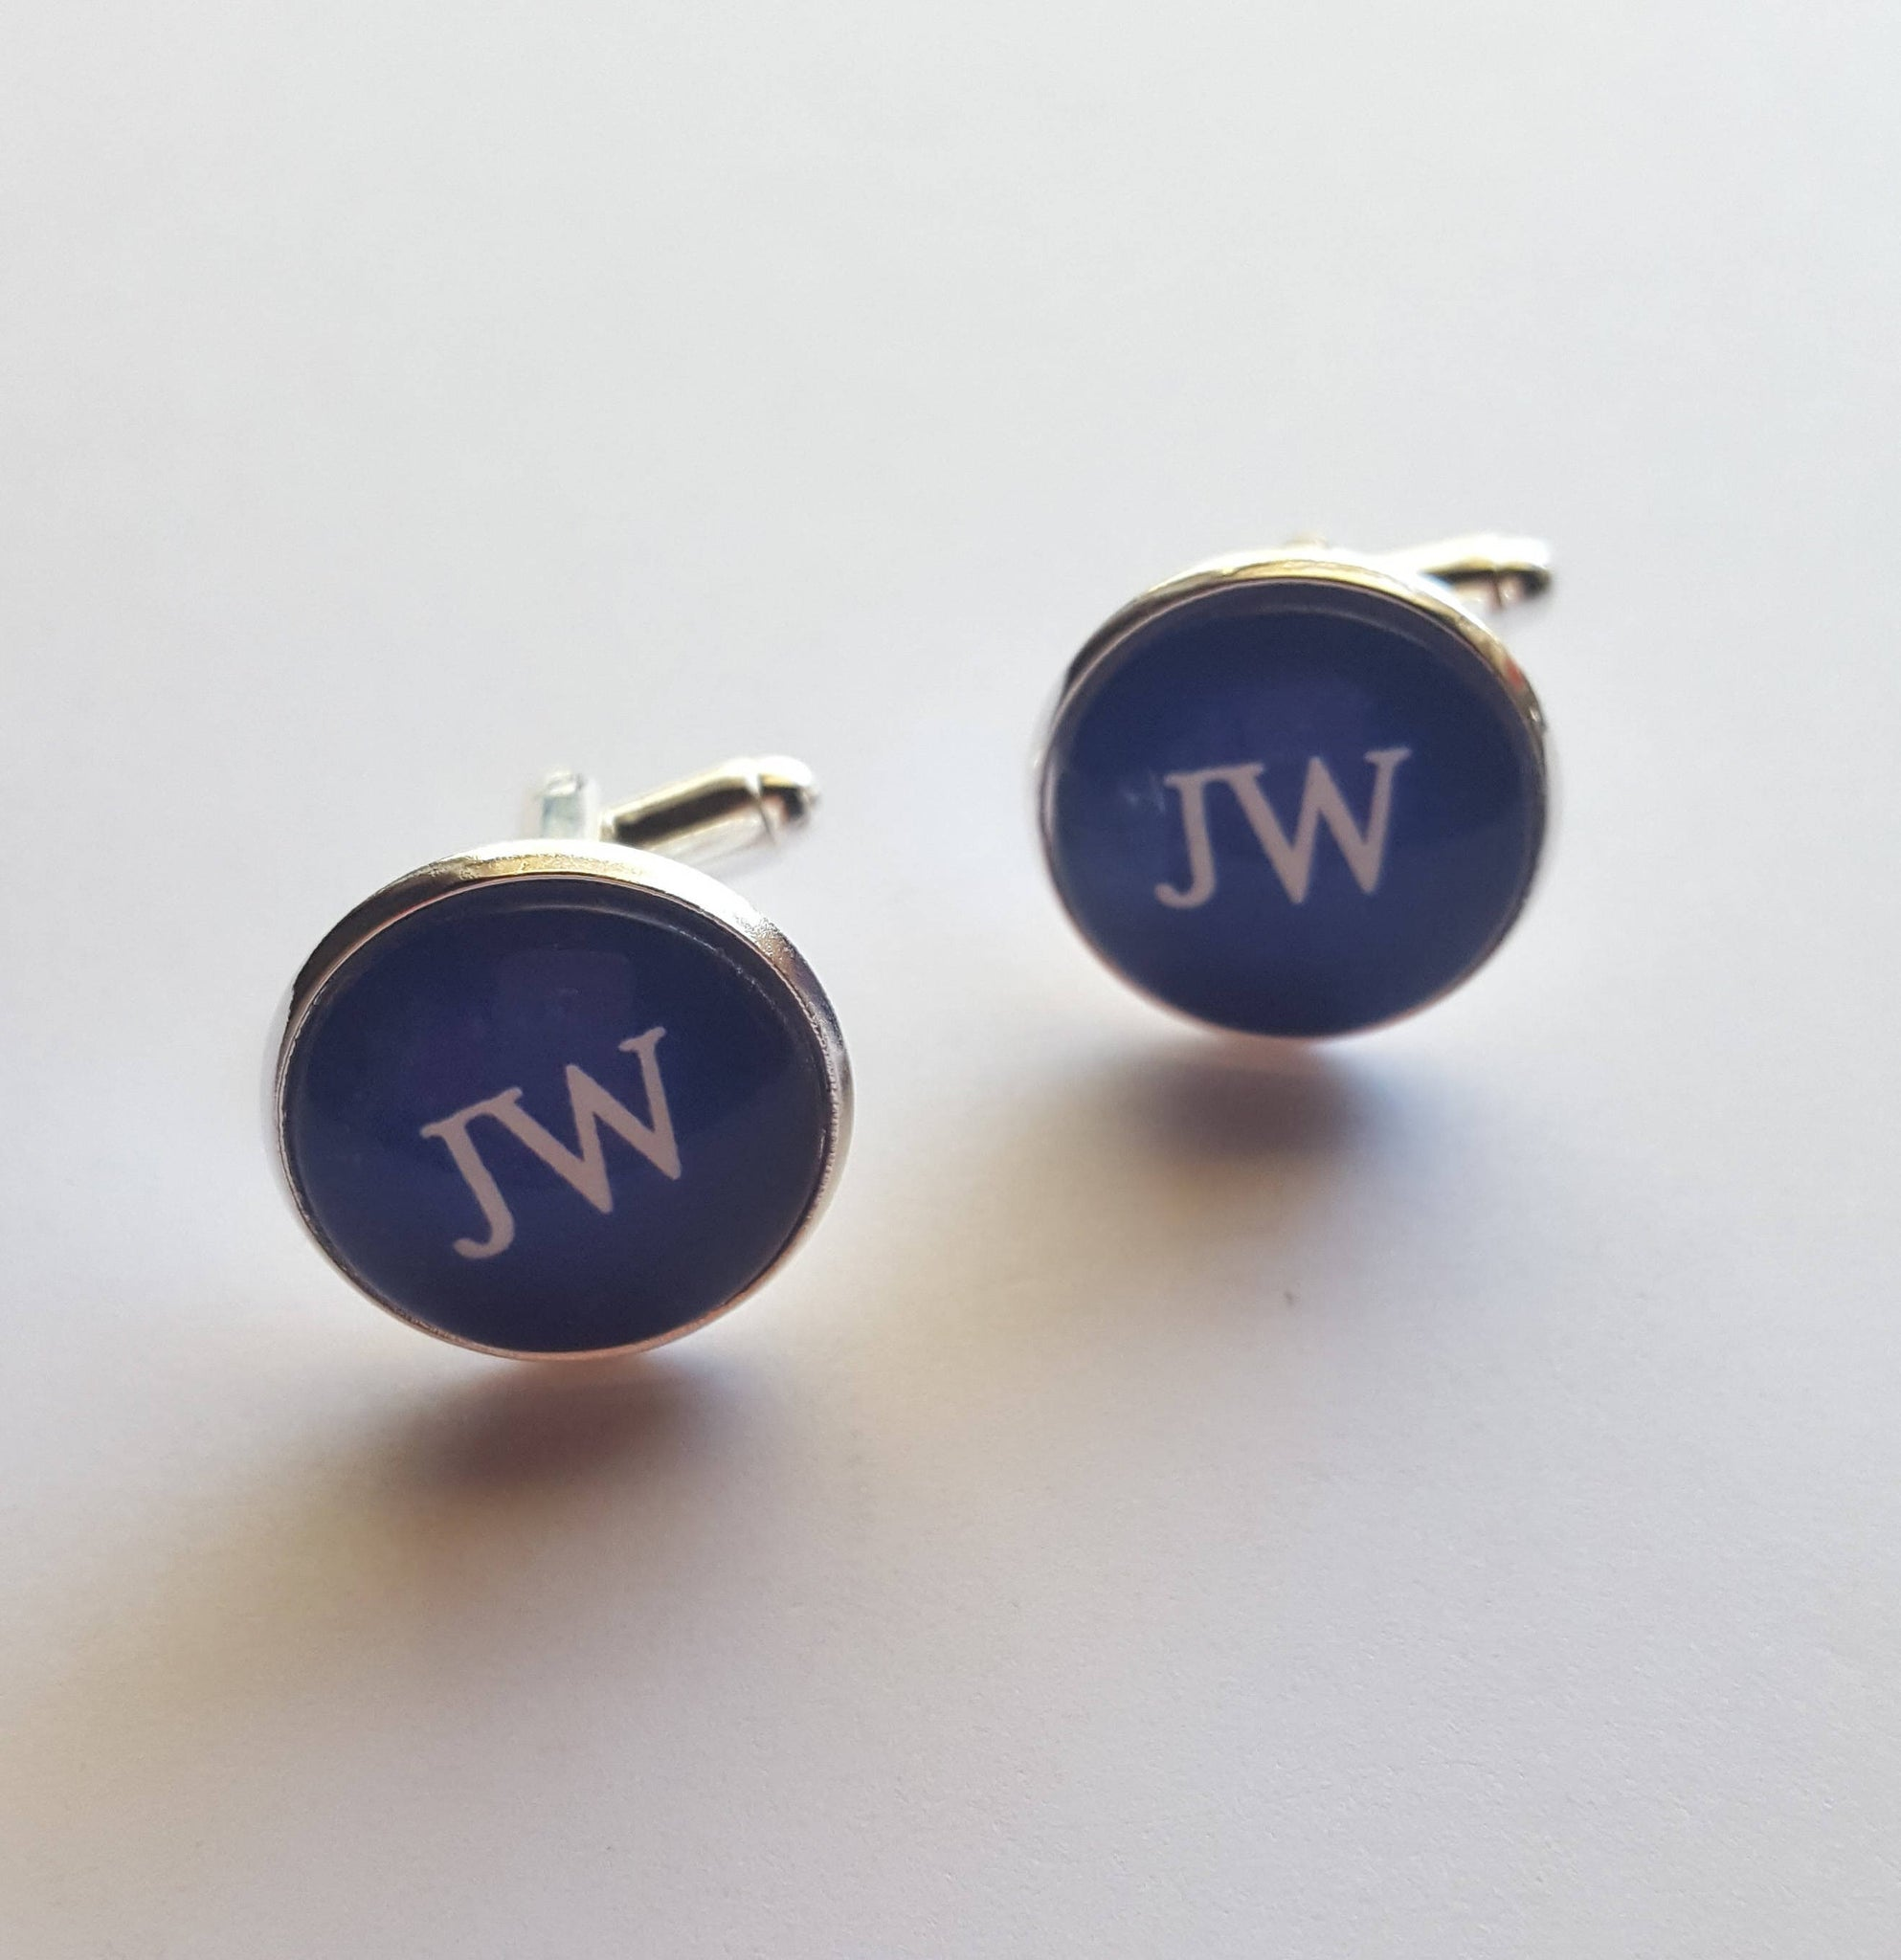 "Shiny Silver Cuff Links ""JW"" on Royal Blue Background, Glass Cabochon, JW.org, Gifts for Brothers, Elders, Baptism"